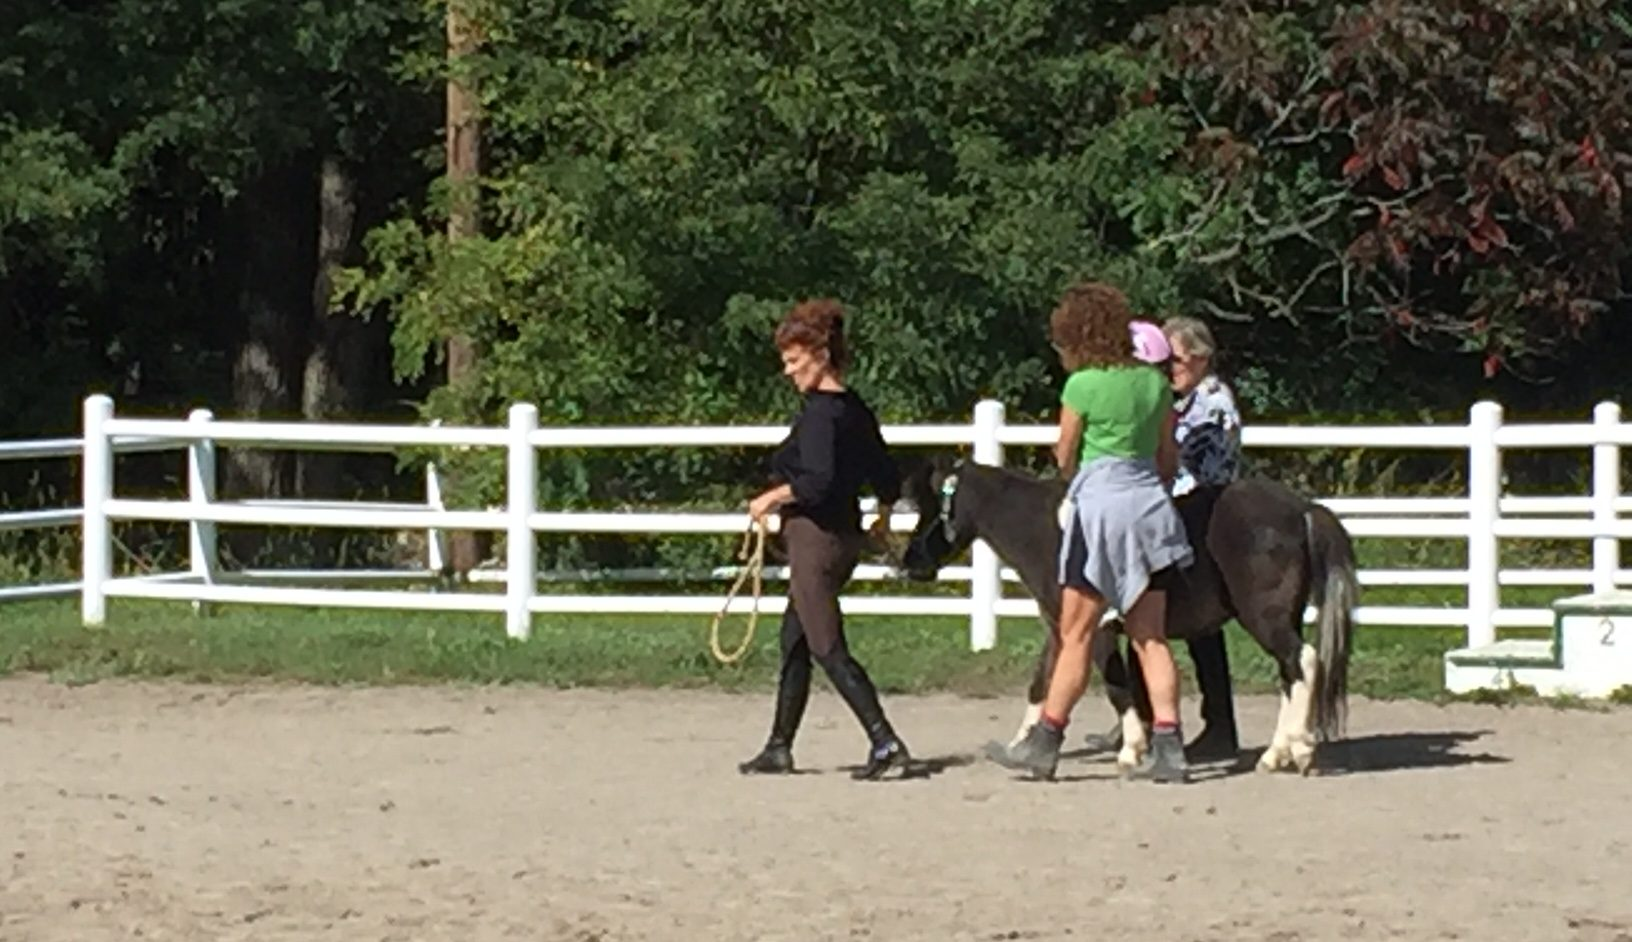 The horses are sweet and gentle. Mary Friona-Celani/Special to The News